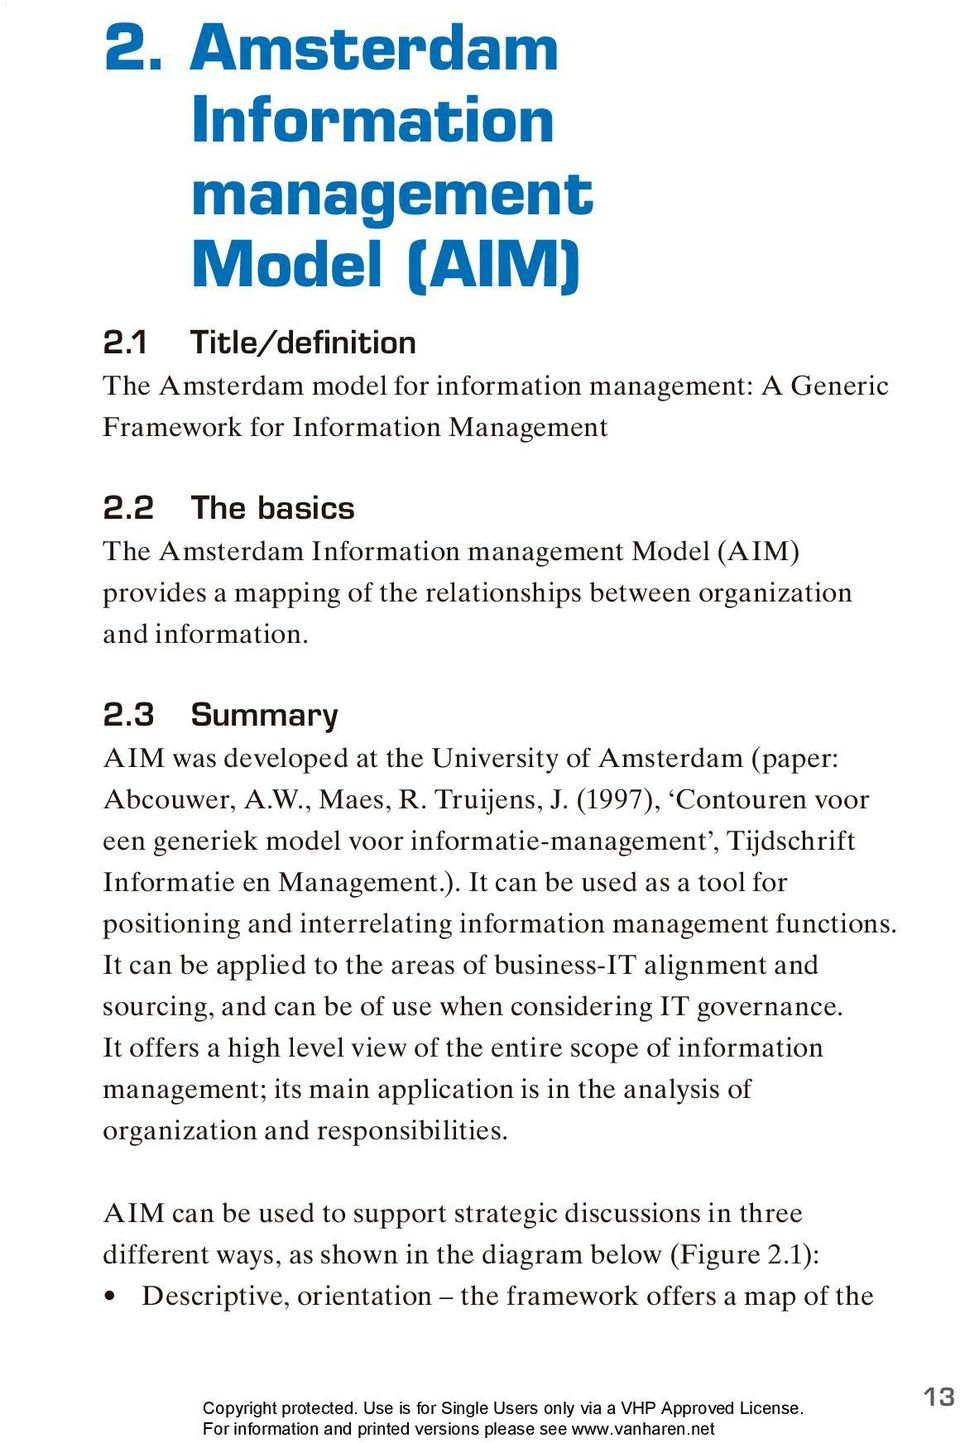 3 Summary AIM was developed at the University of Amsterdam (paper: Abcouwer, A.W., Maes, R. Truijens, J.